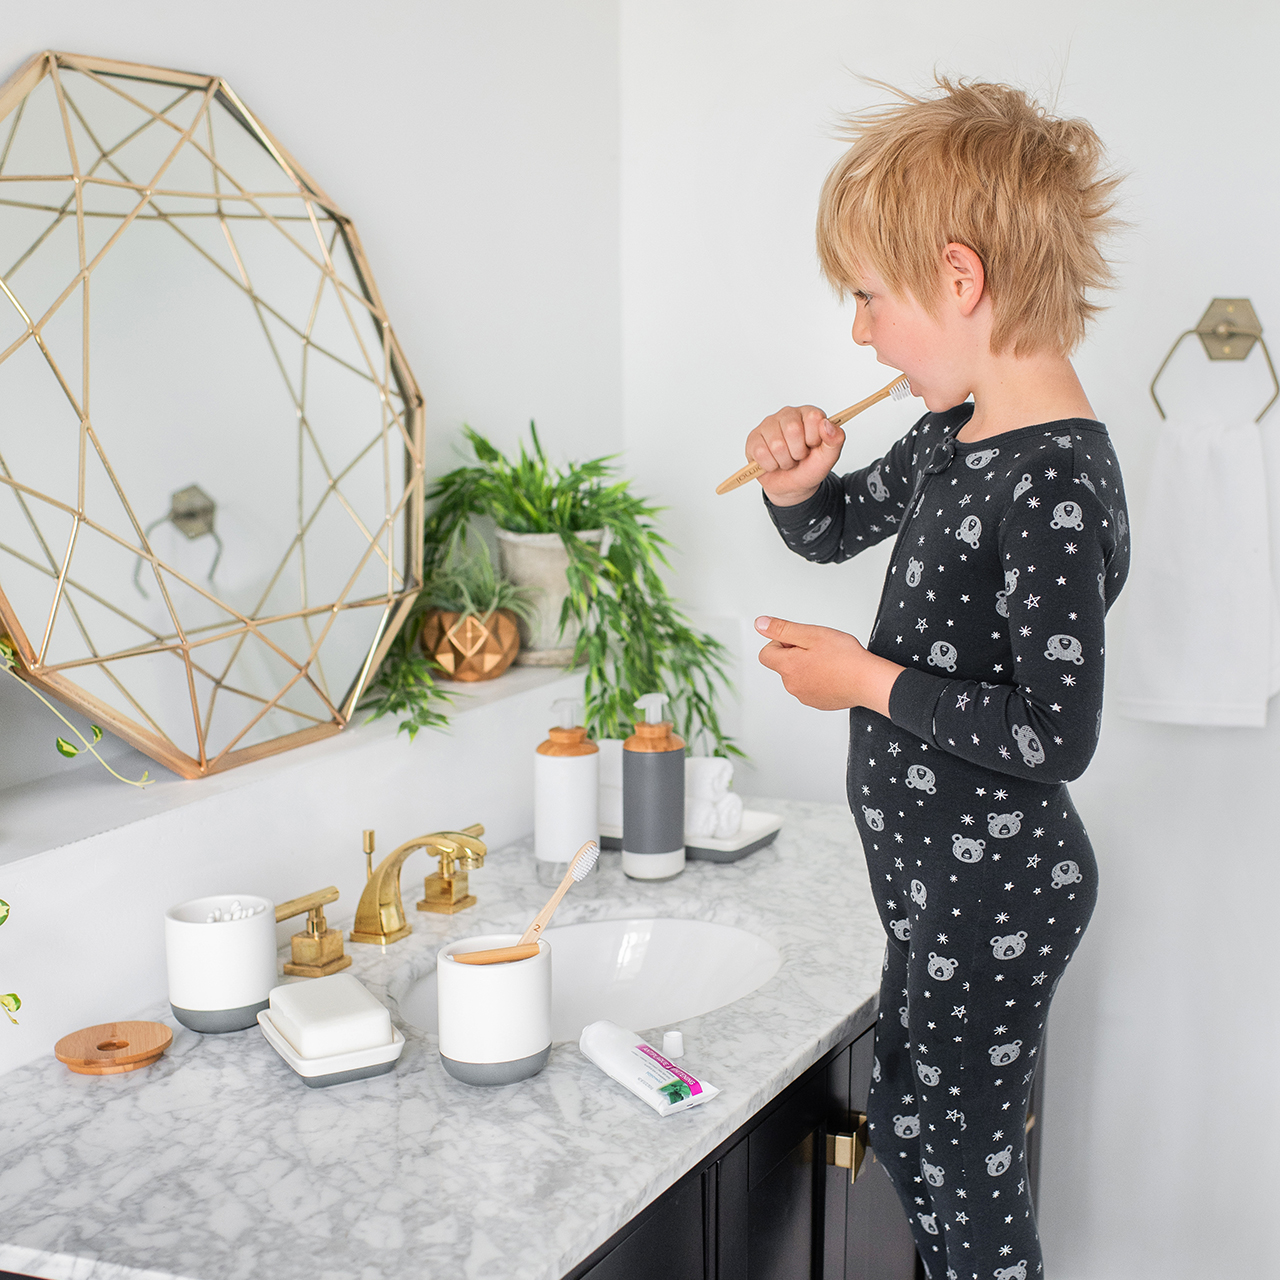 Young boy in pajamas stands on a stool and looks into a mirror while brushing his teeth